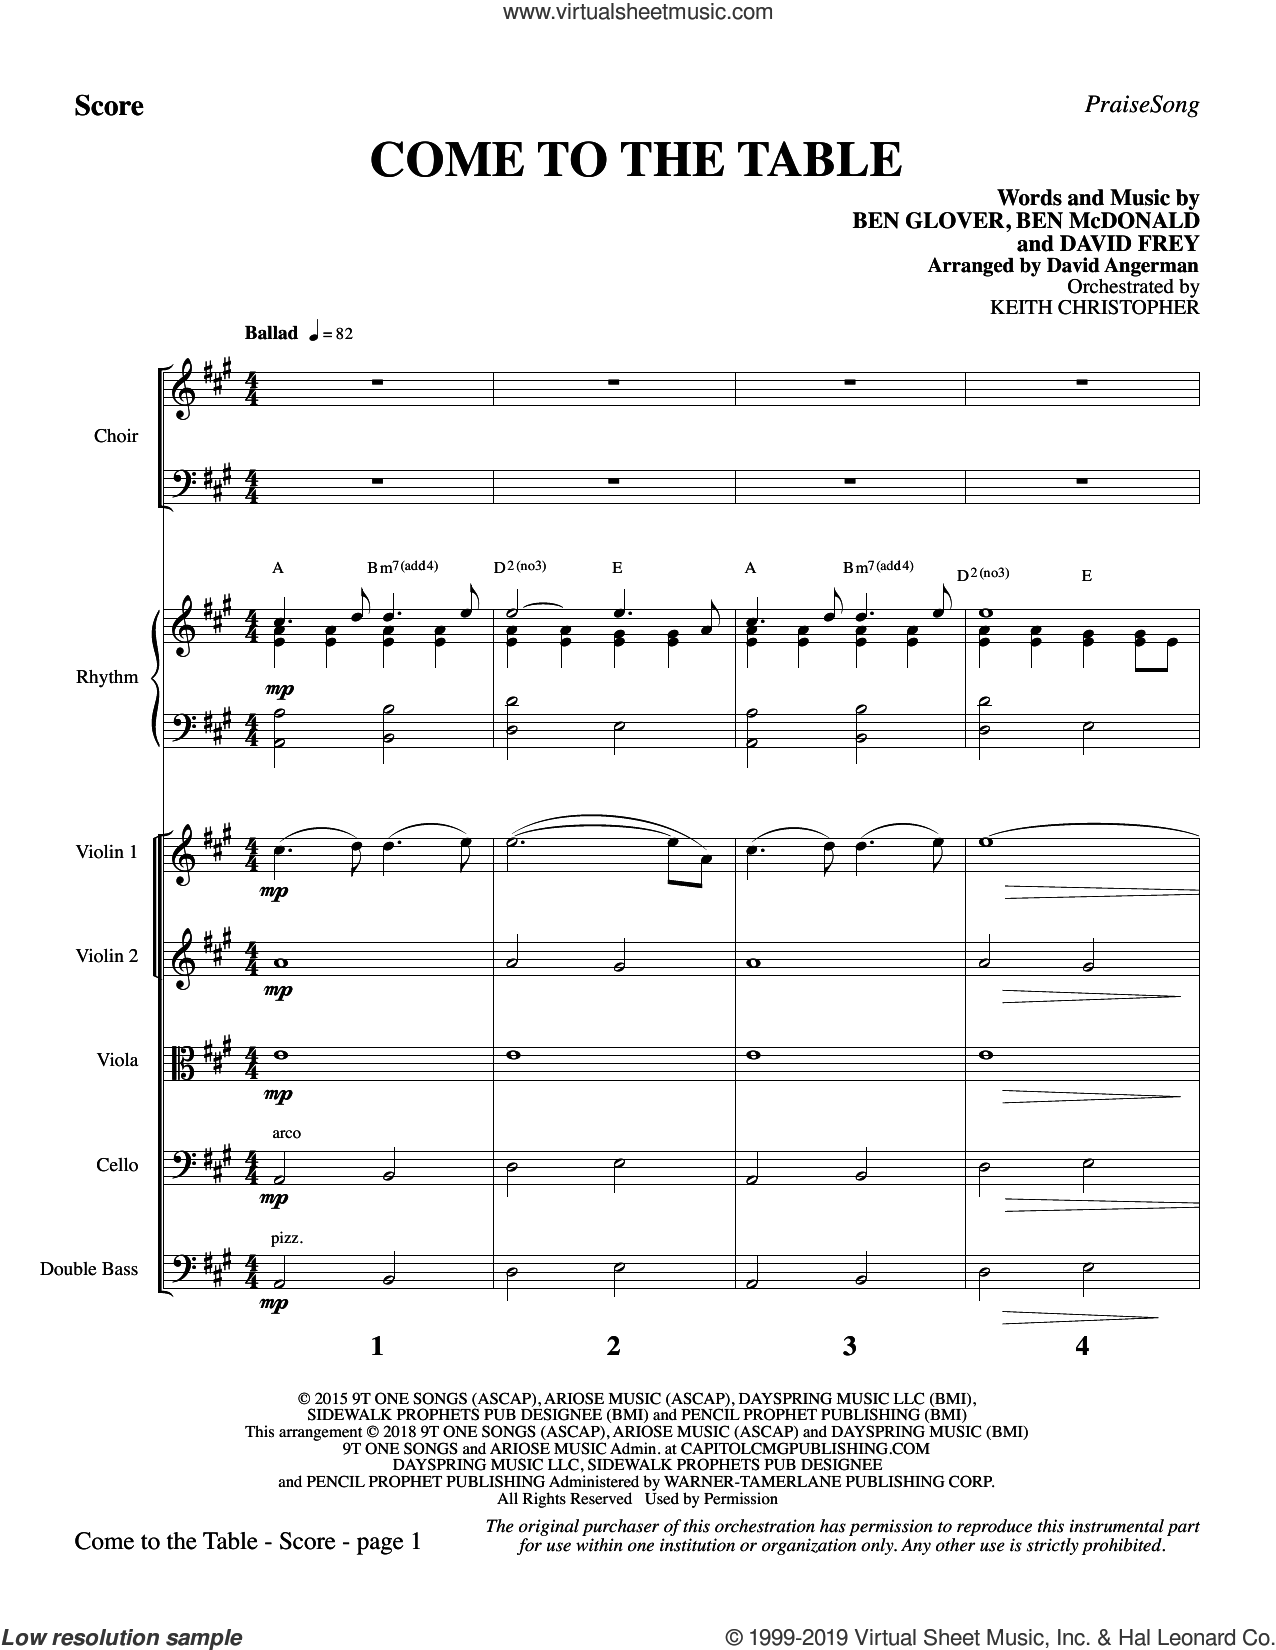 Come to the Table (arr. David Angerman) (COMPLETE) sheet music for orchestra/band by David Angerman, Ben Glover, Ben McDonald, Dave Frey and Sidewalk Prophets, intermediate skill level